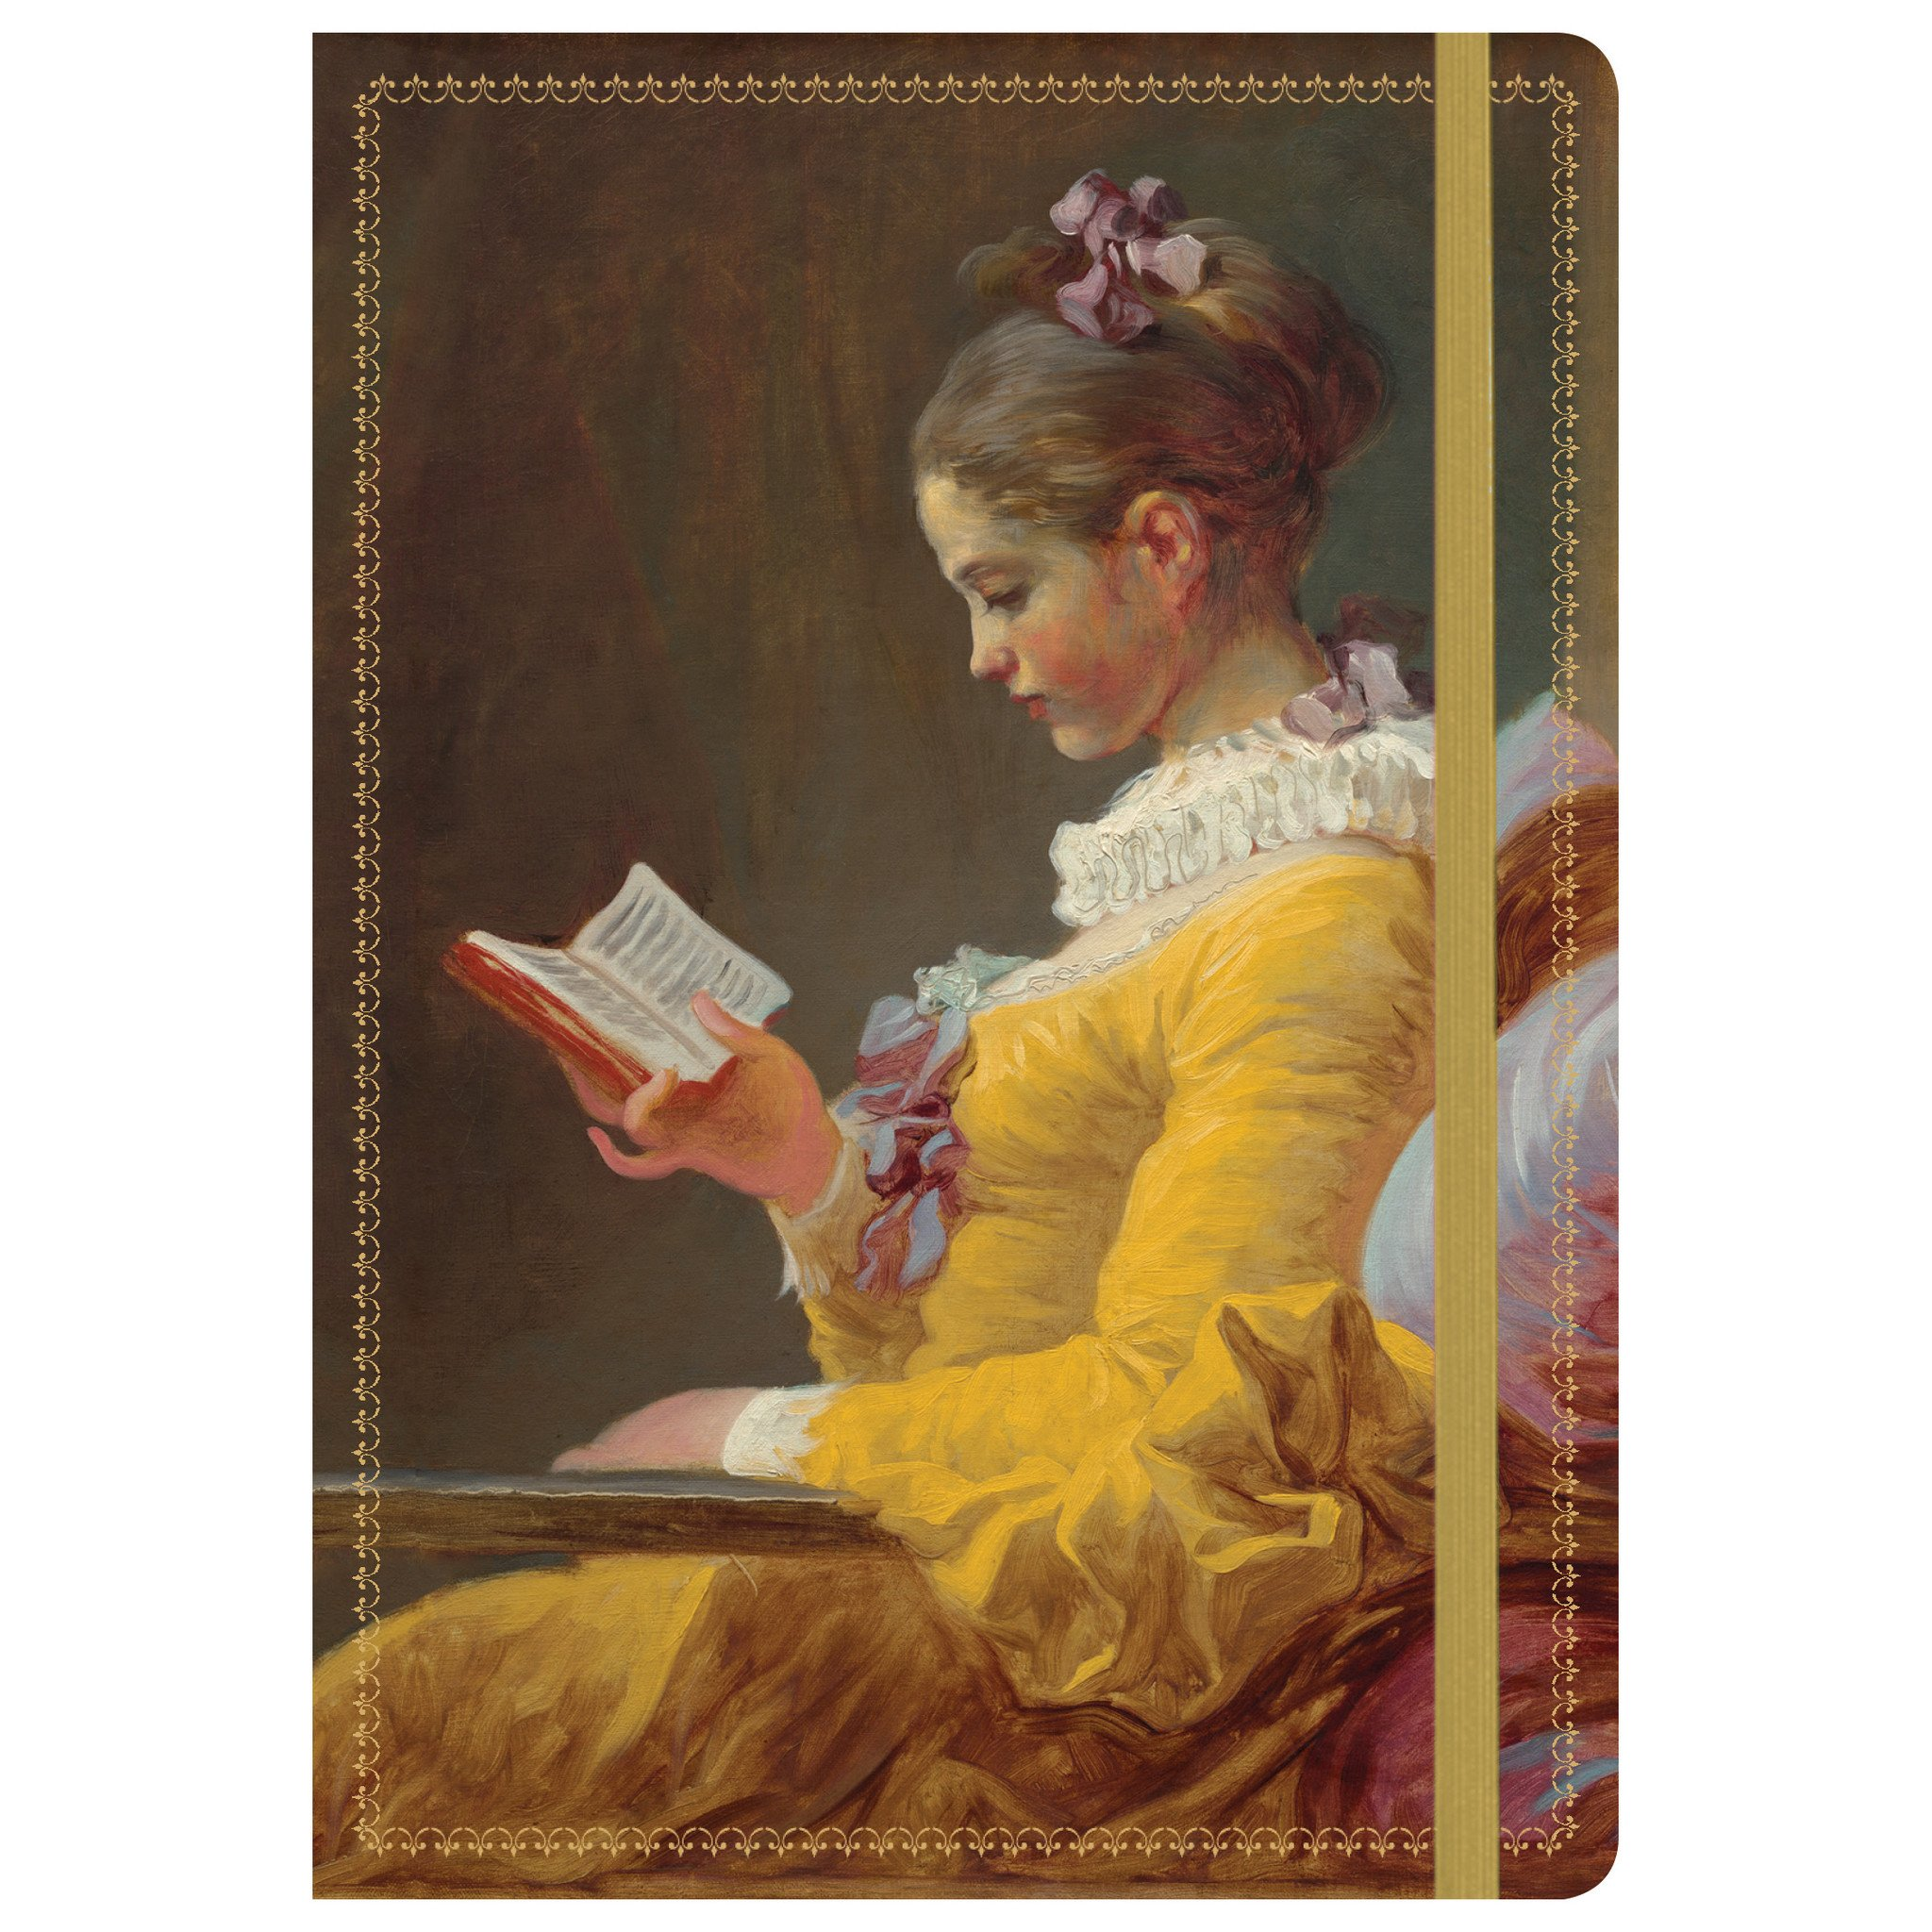 2048x2048 Nga Fragonard Young Girl Reading Gilded Journal Galison - Young Girl Reading Painting